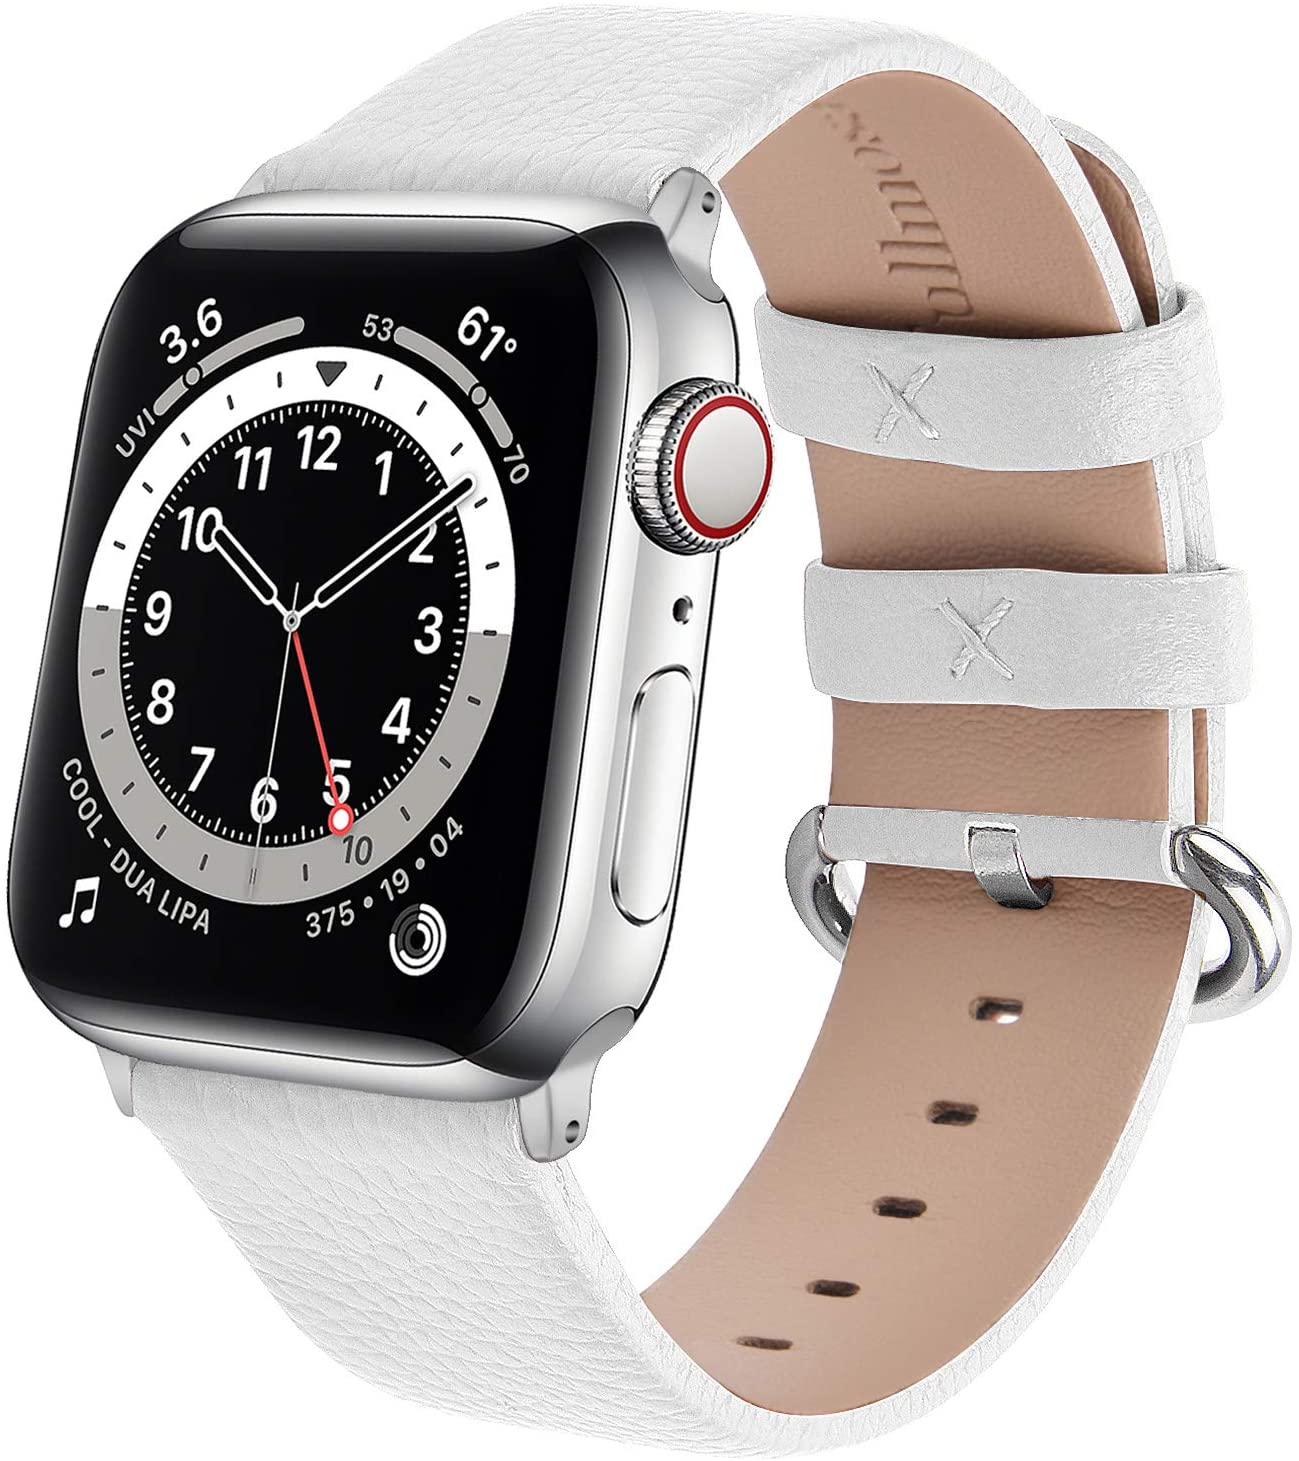 Fullmosa Watchband Compatible for Apple Leather Watch Band 38mm 40mm 42mm 44mm Stainless Steel Silver Buckle Women Men, Replacement Wristbands Strap for iWatch Series 6/SE/5/4/3/2/1, Edition, Sport , White